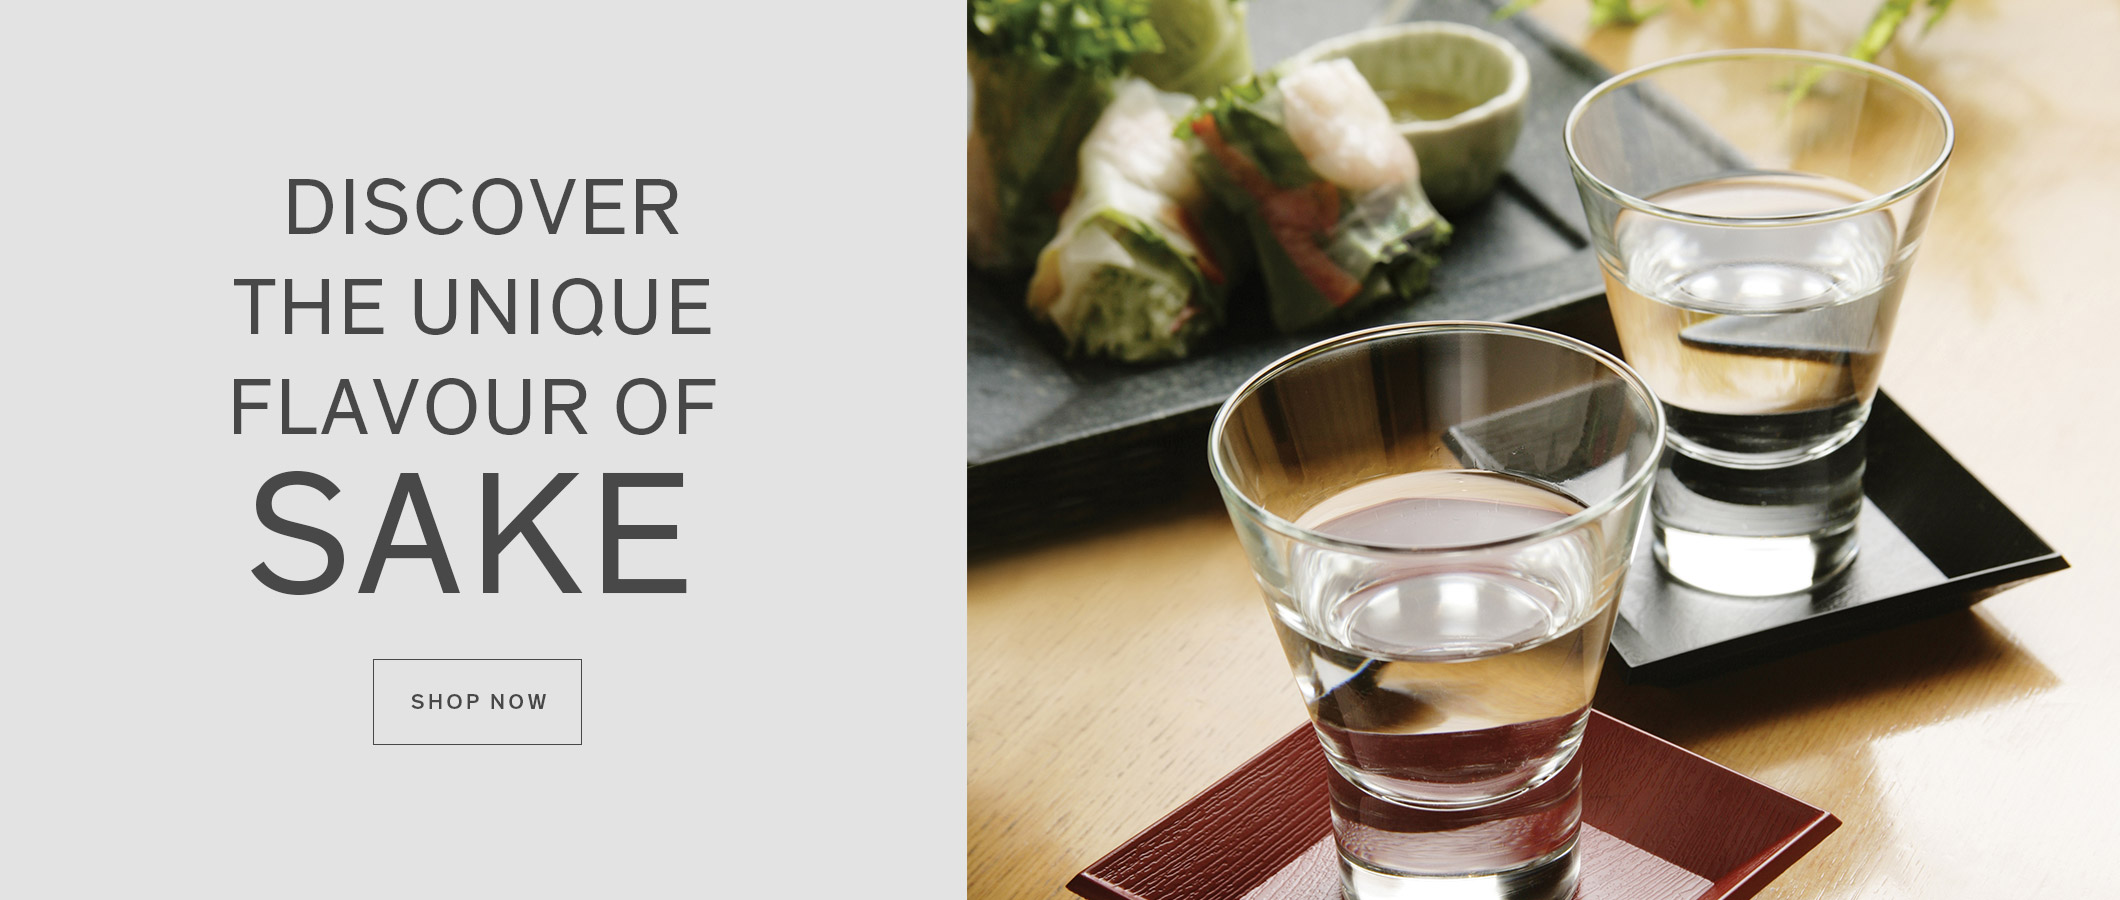 Explore our collection of sake products